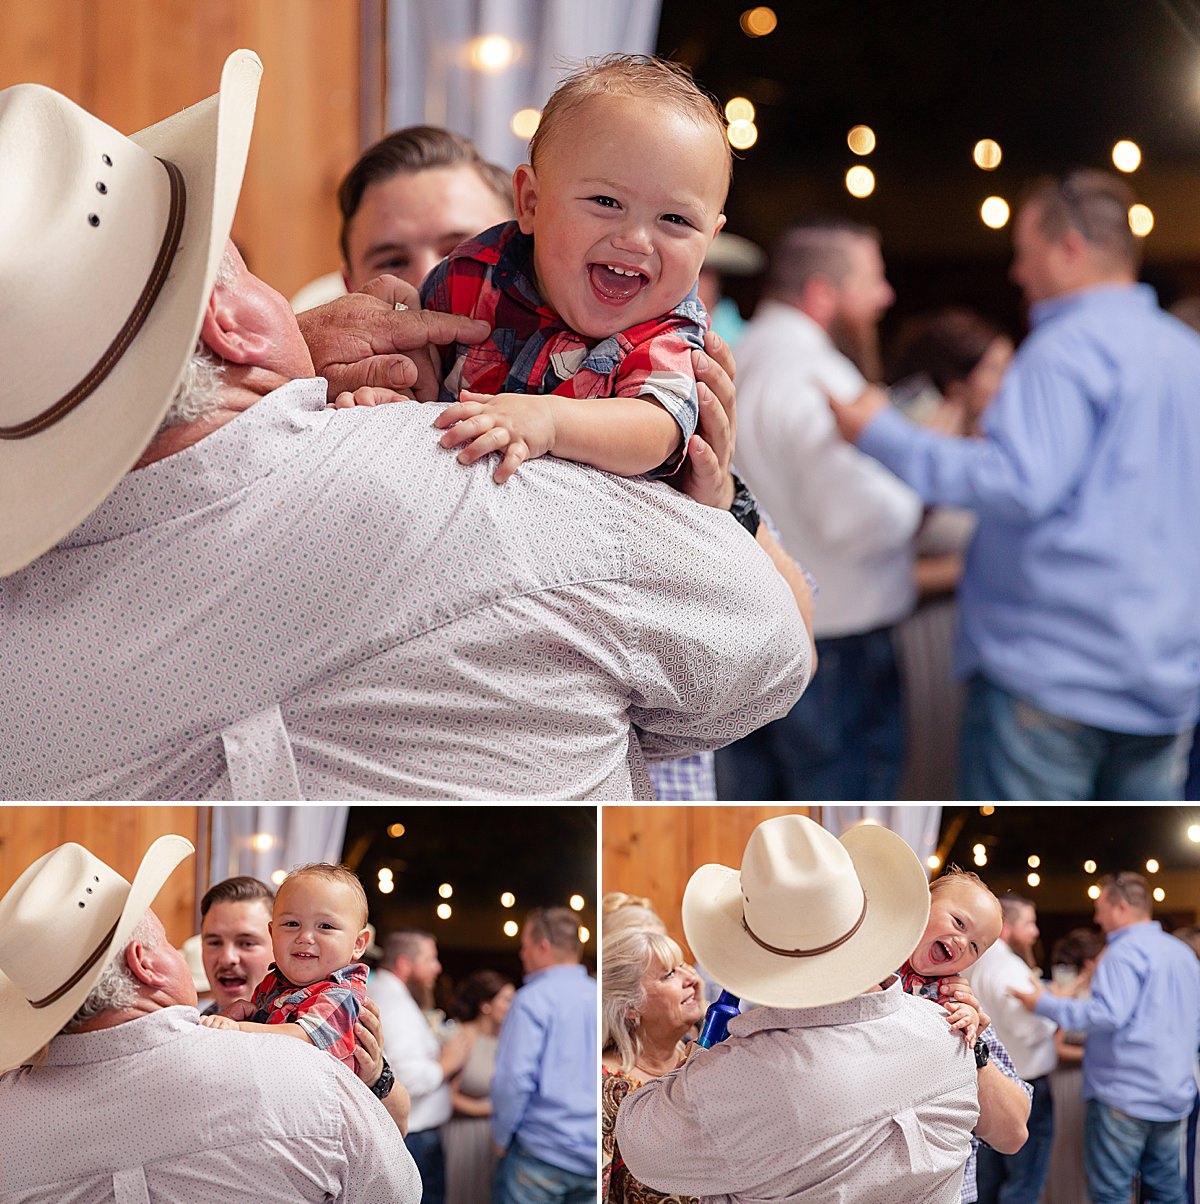 Rustic-Texas-Wedding-Hollow-Creek-Ranch-Carly-Barton-Photography_0013.jpg